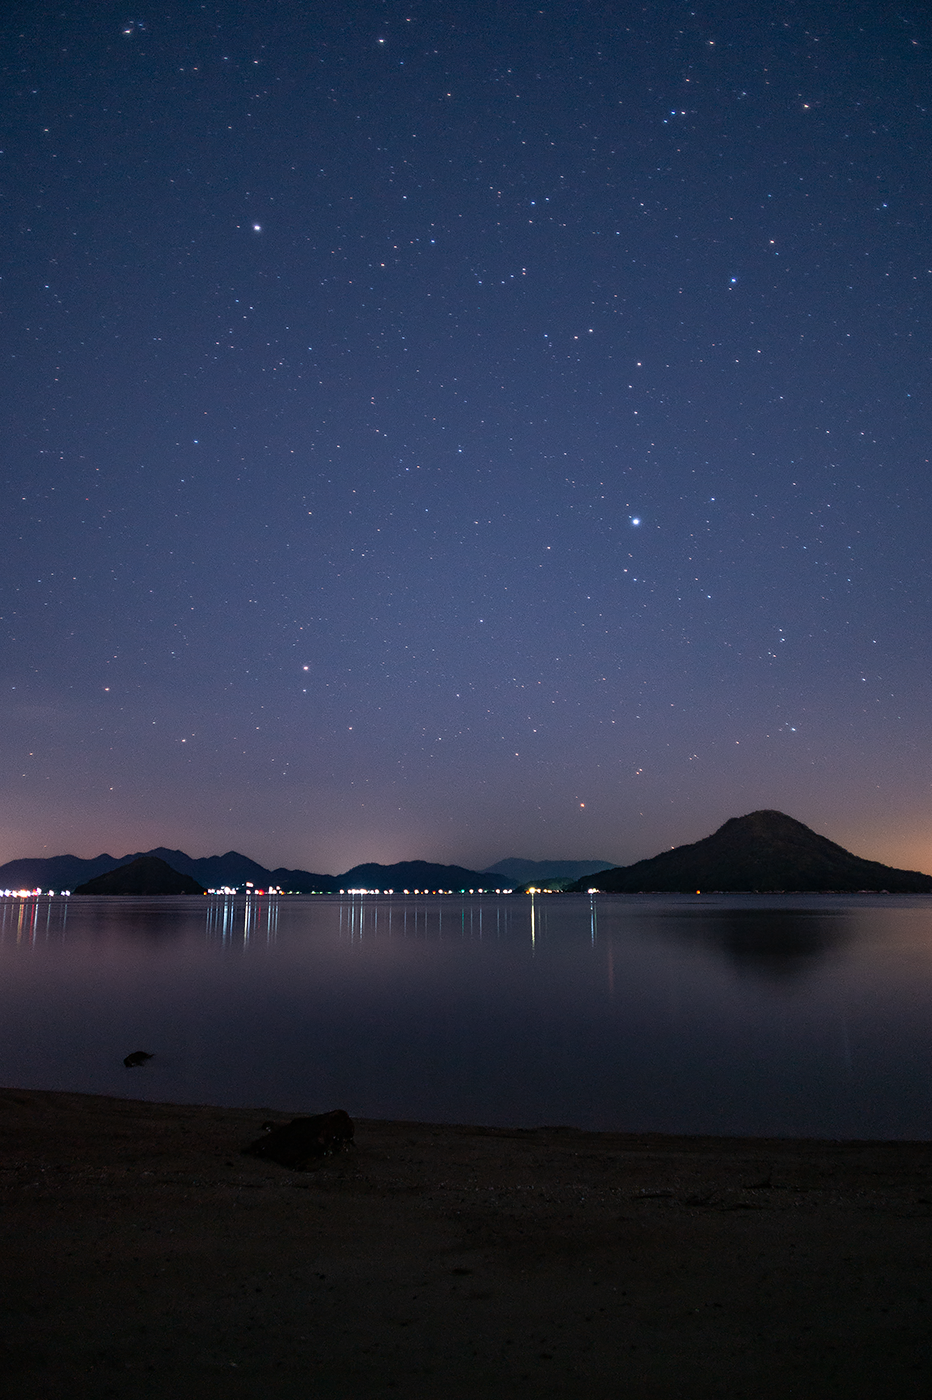 Nikon Df:NIKKOR-N・C Auto 24mm F2.8 + Kenko Starry Night & MC Pro Softon(A):ISO2000 f2.8 30s